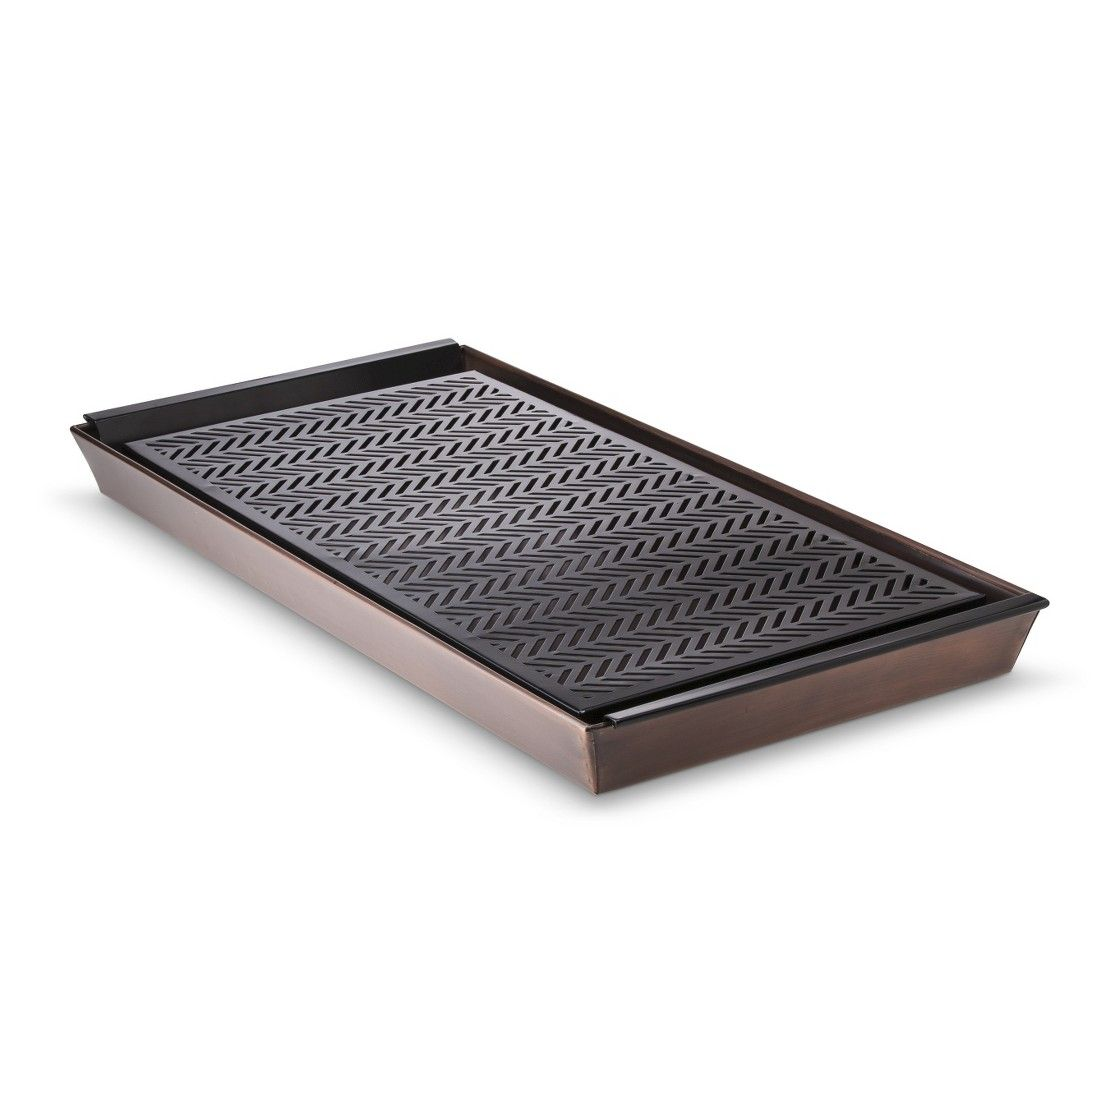 Smith & Hawken Copper Boot Tray With Liner Home